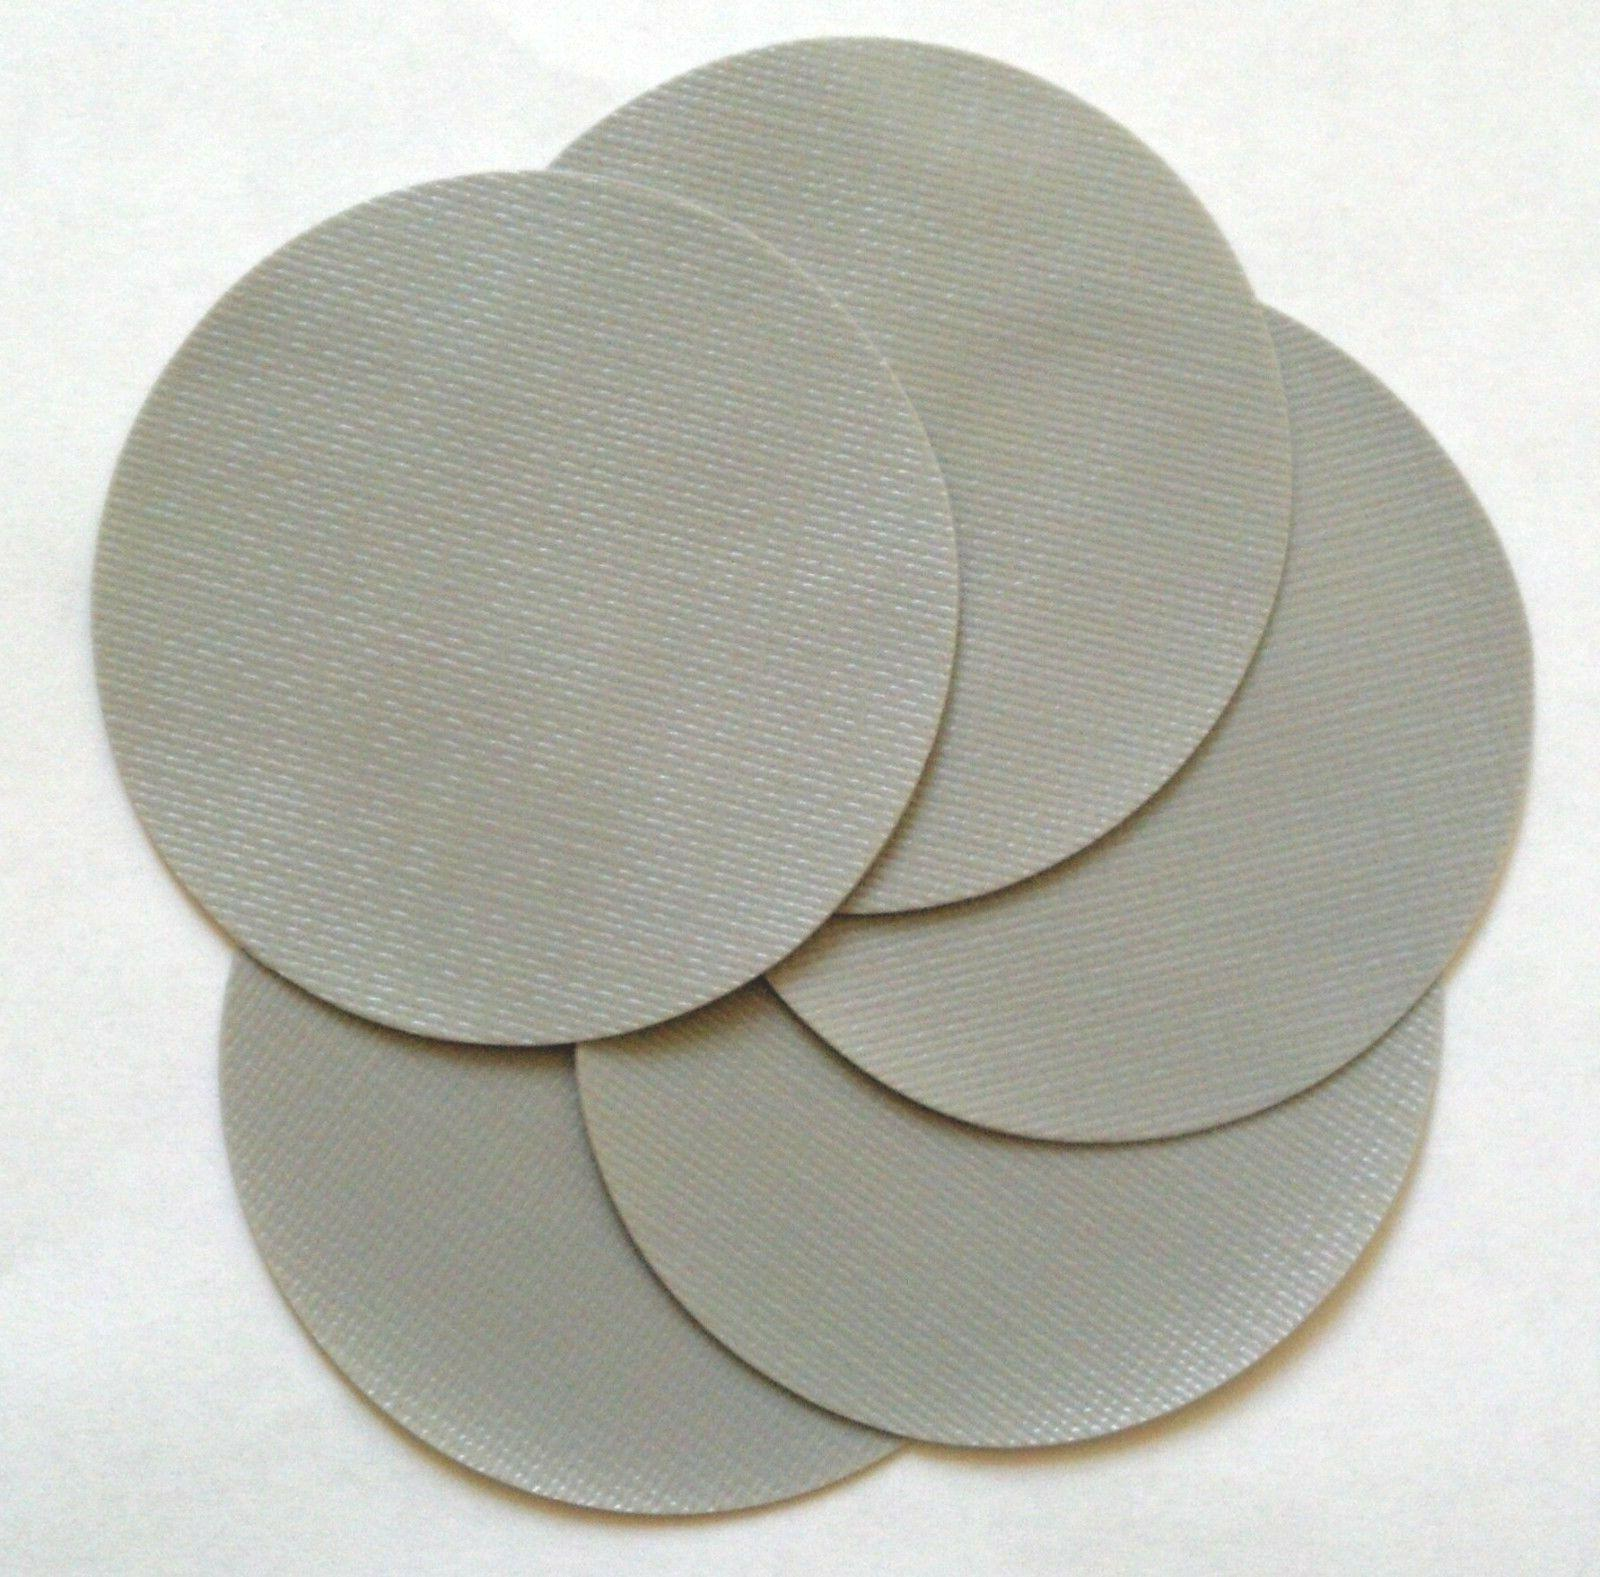 Thick Heavy Duty Vinyl Repair Patch: Inflatables Boat Raft D